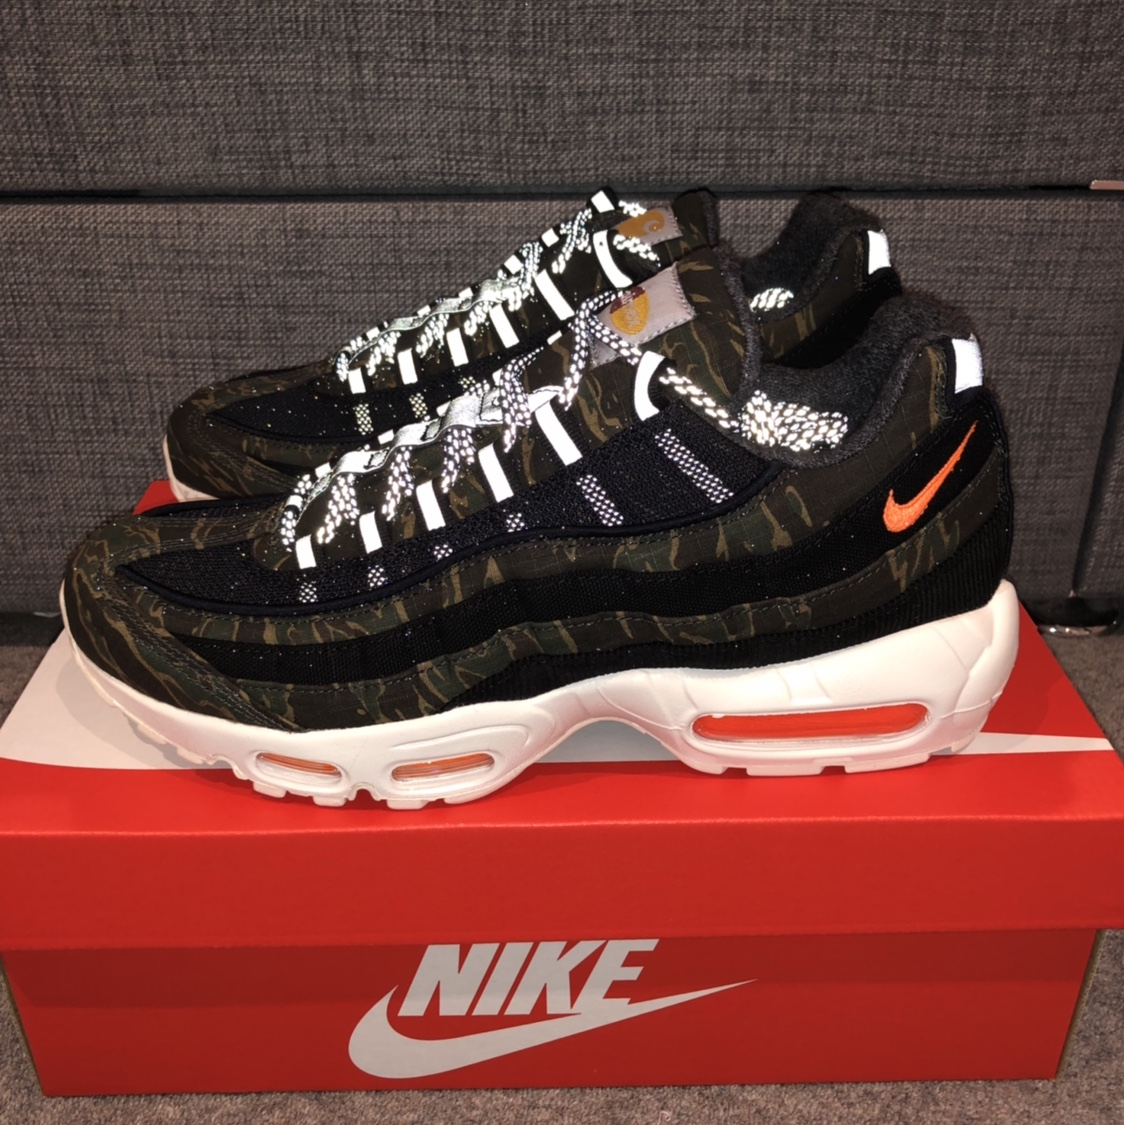 new arrival b826a 73ab6 Nike air Max 95 Carhartt WIP. Size 8 Brand new &... - Depop